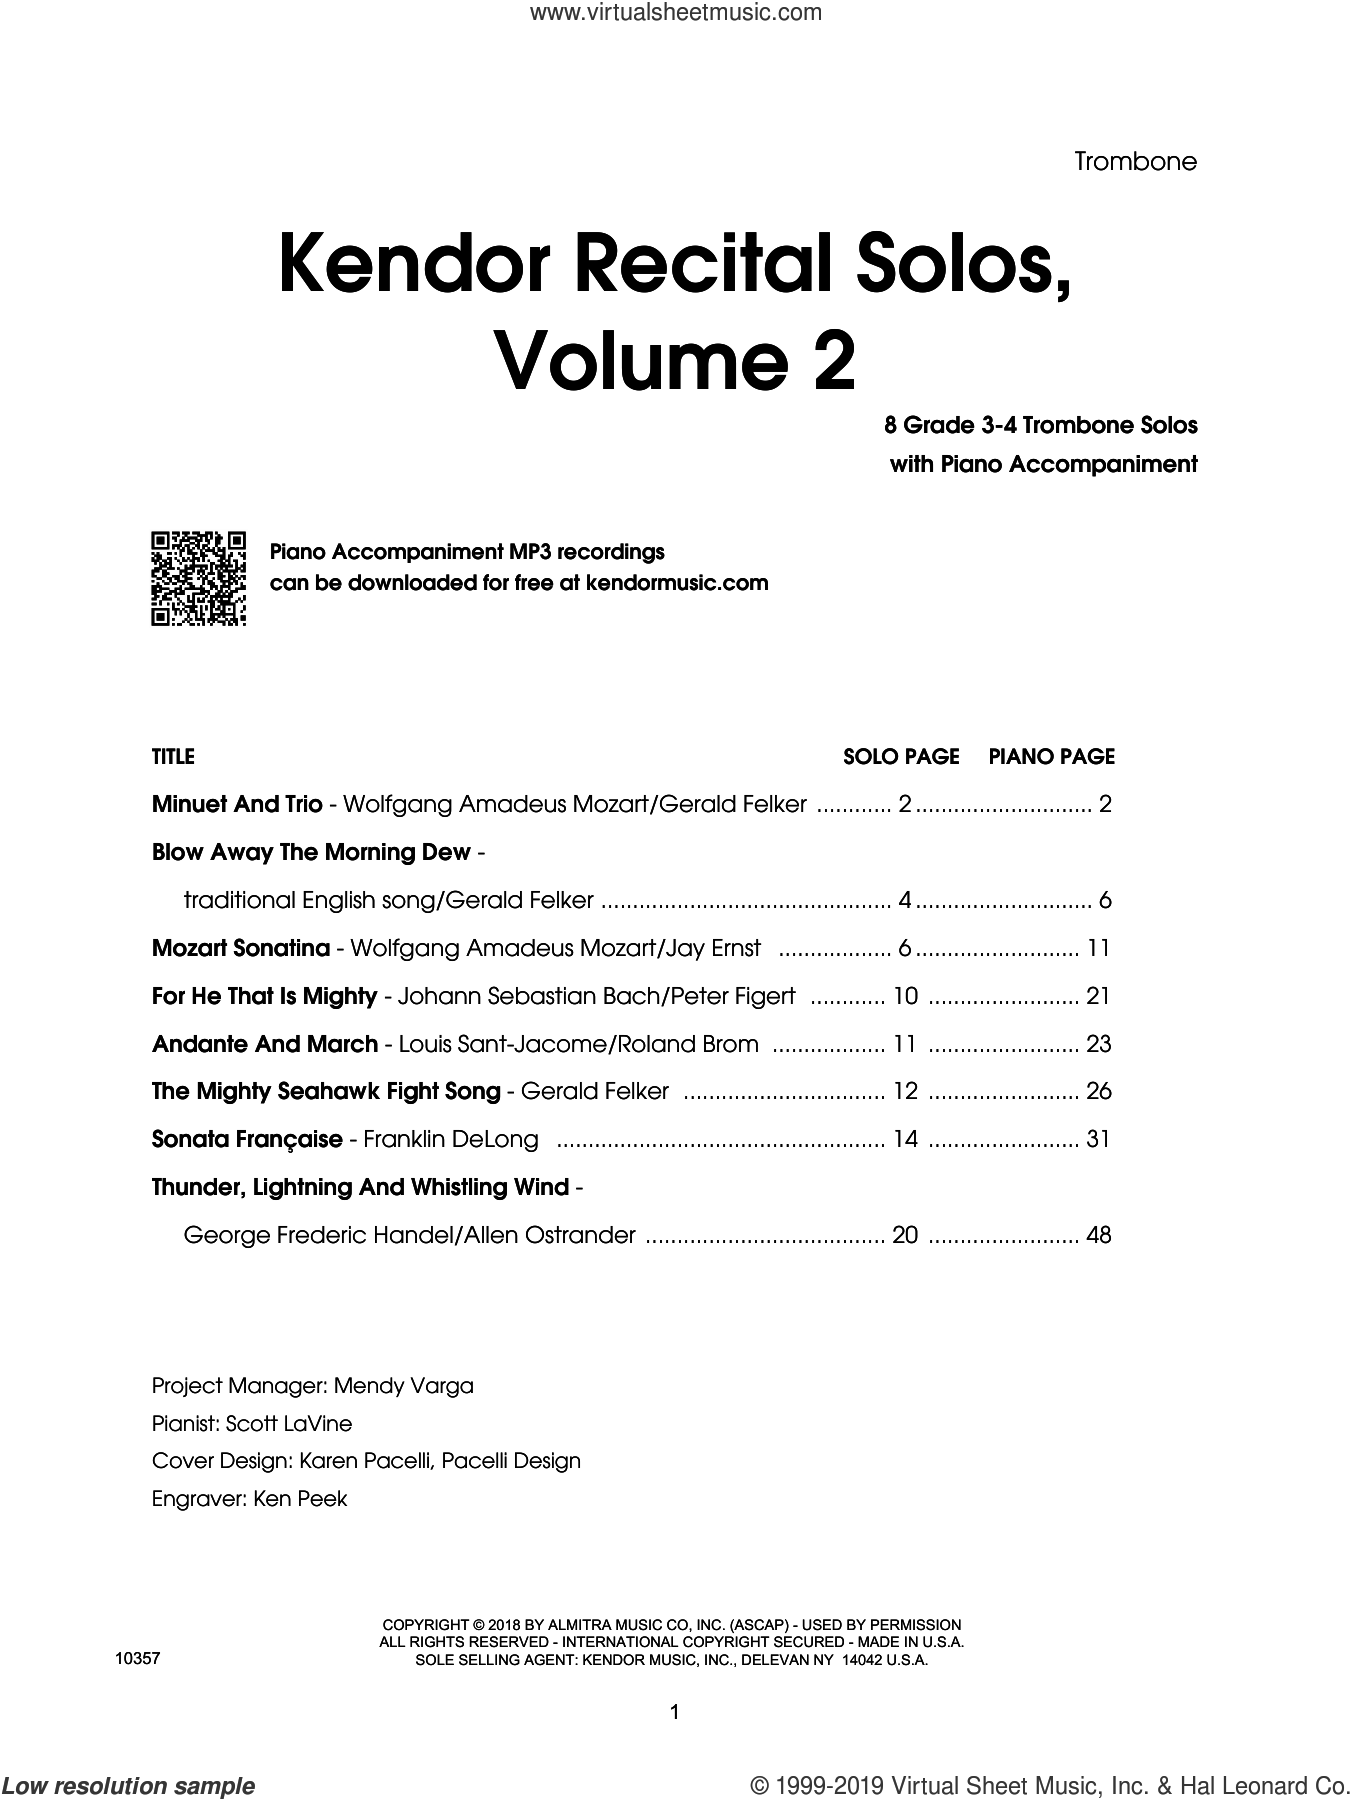 Kendor Recital Solos, Volume 2 - Trombone With Piano Accompaniment and MP3's (complete set of parts) sheet music for trombone and piano, intermediate skill level